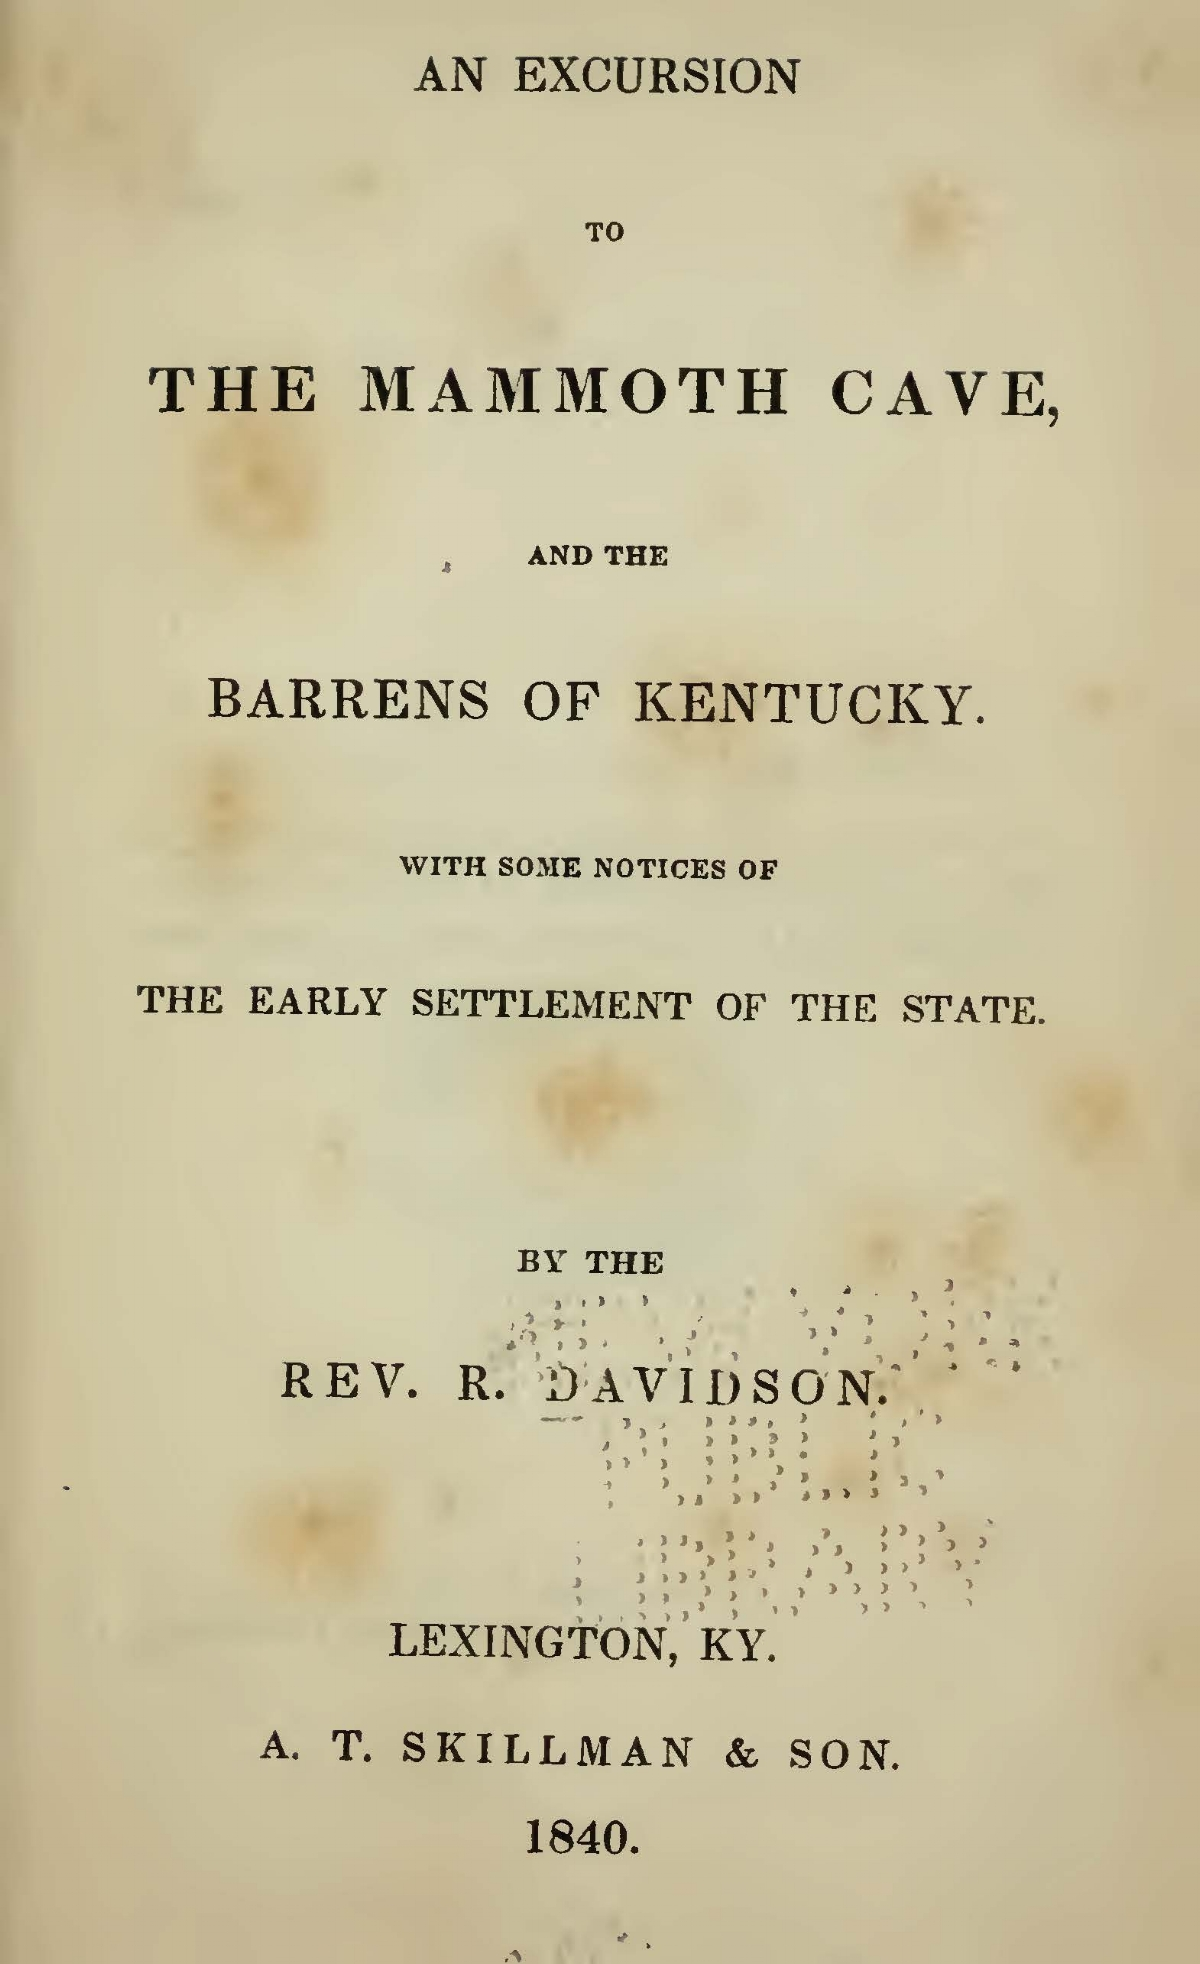 Davidson, Robert, An Excursion to the Mammoth Cave Title Page.jpg